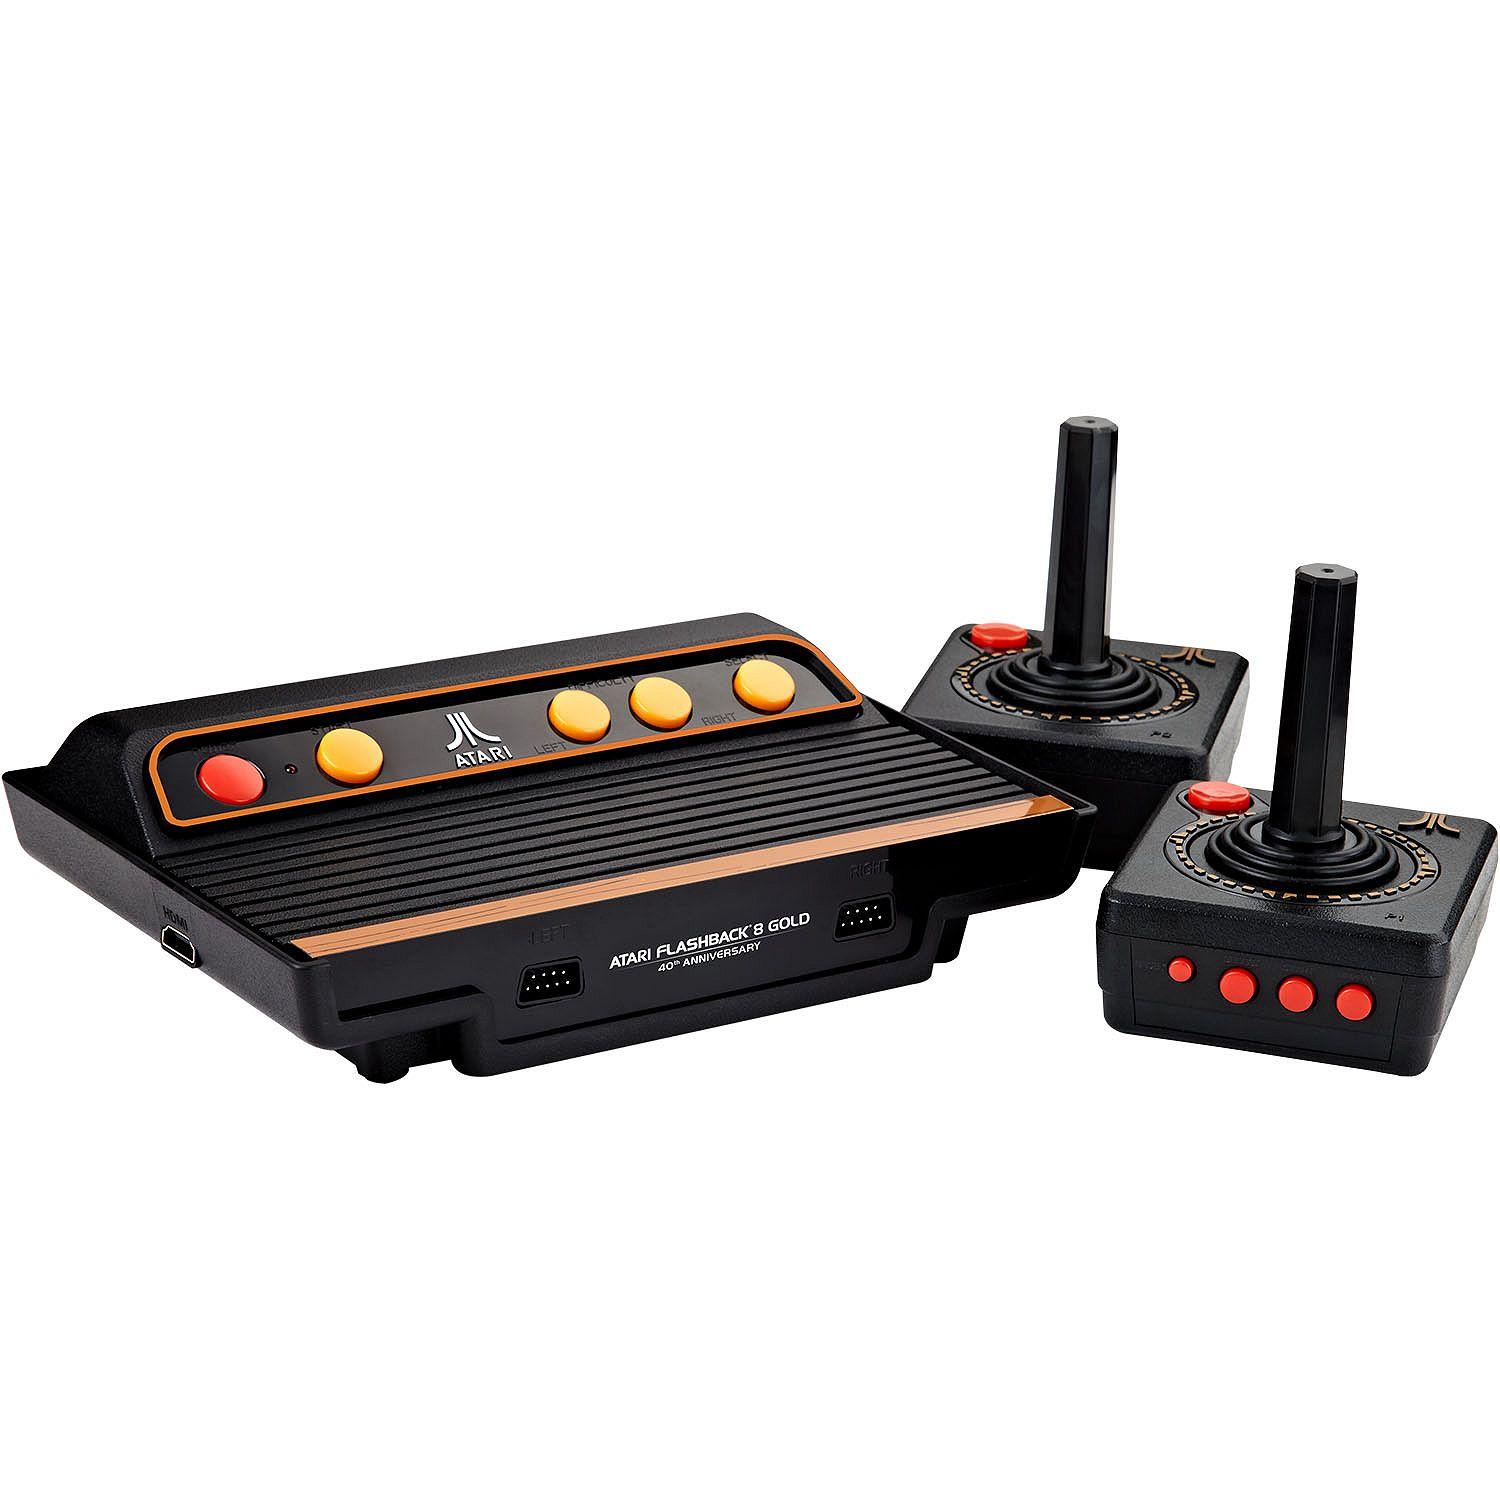 Atari flashback 8 gold hd classic game console 120 built in games hdmi 720p 857847003820 ebay - Atari flashback 3 classic game console ...